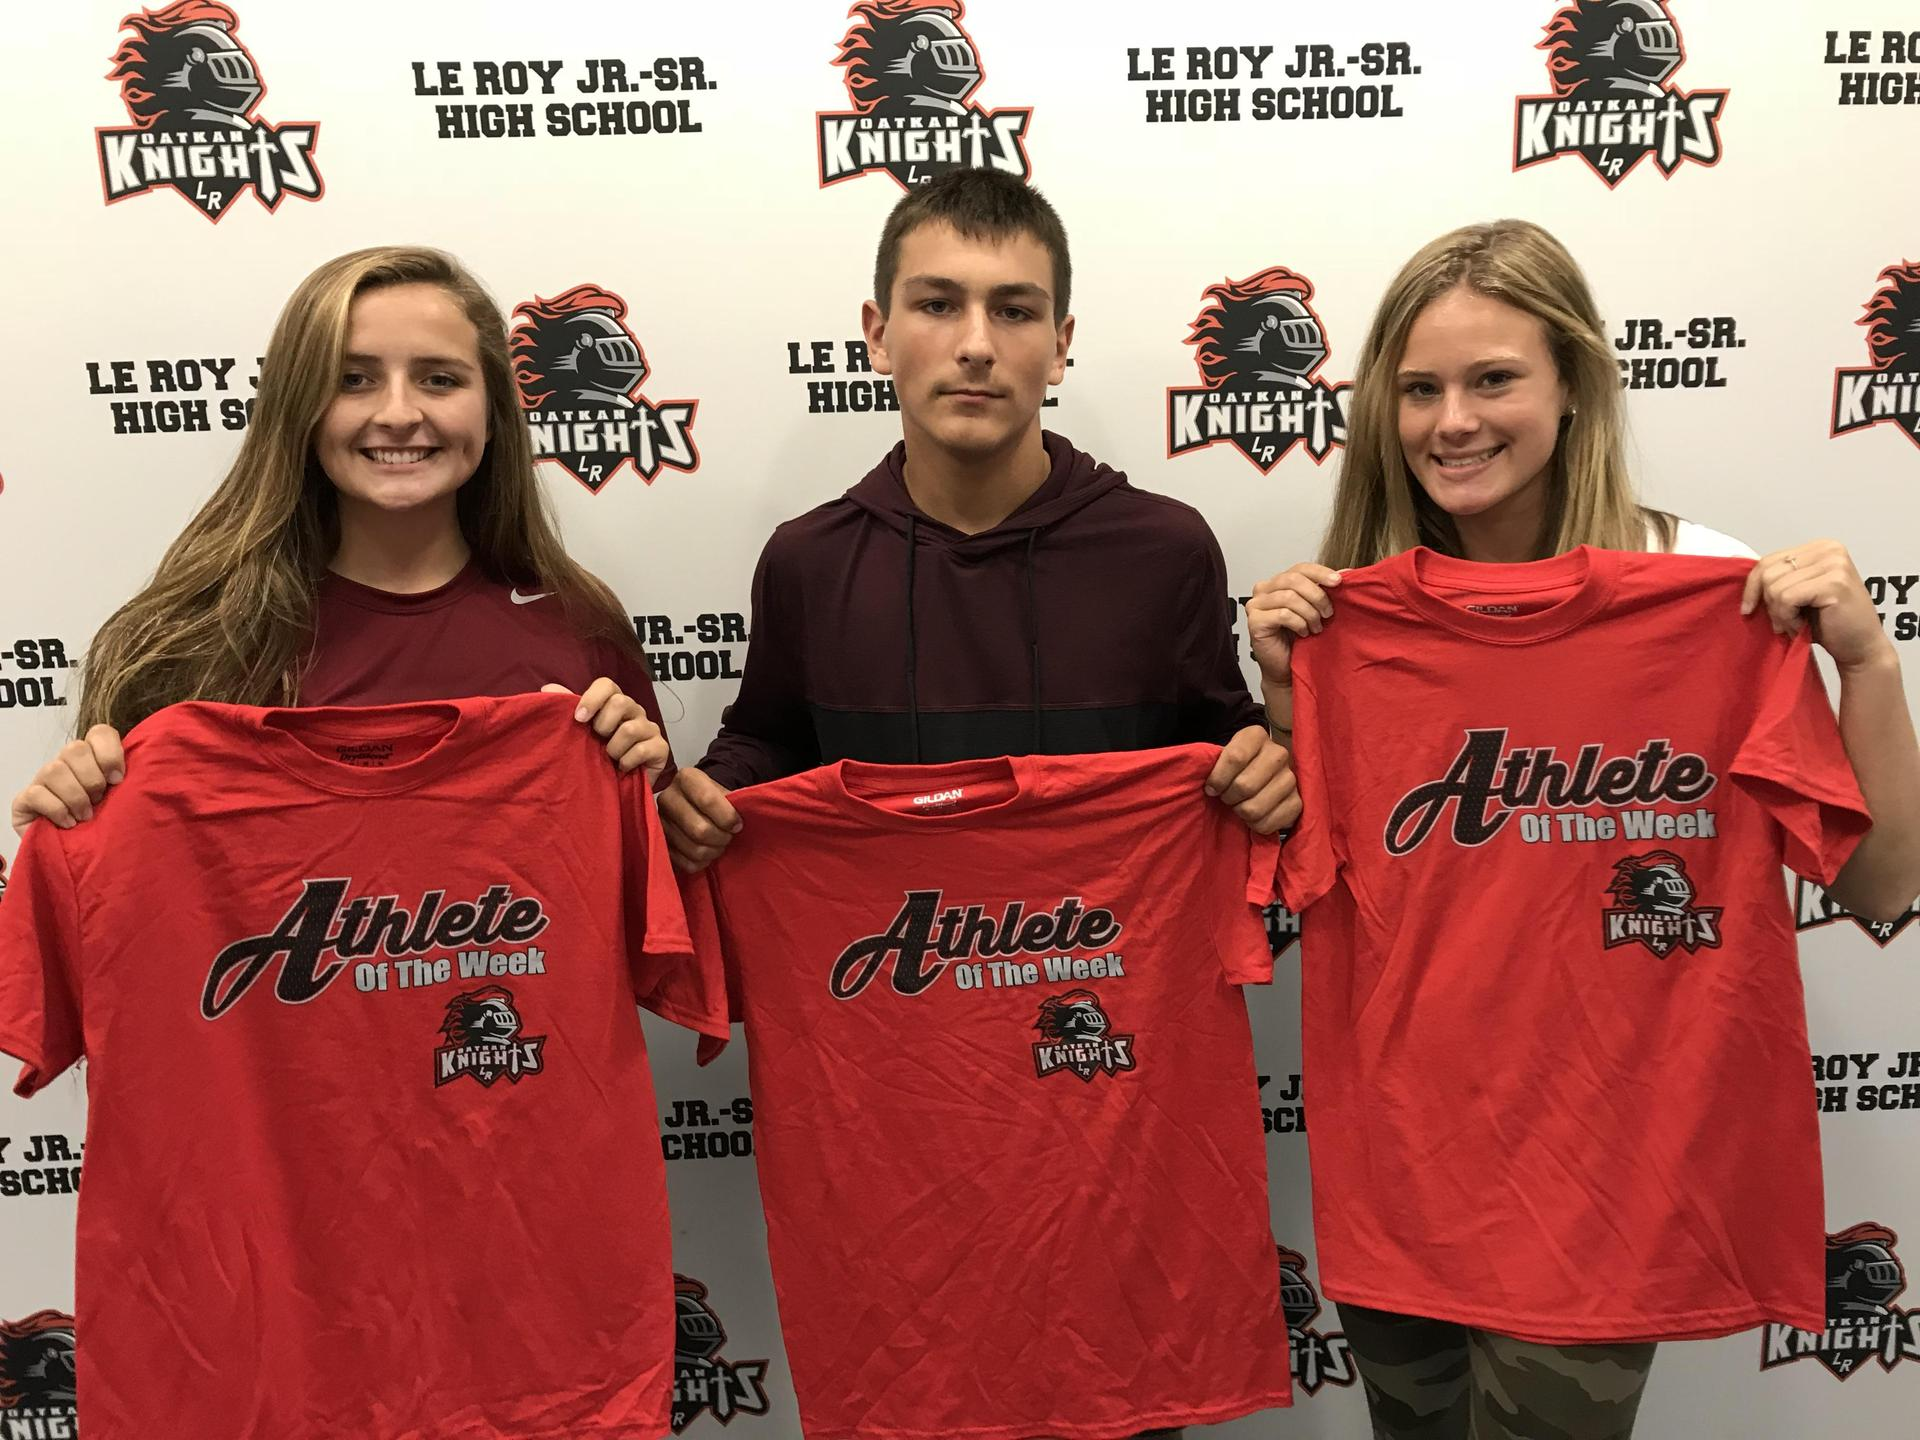 Athletes of the Week - Riley Pasquale, Kyler LaCarte, Maddie Keister